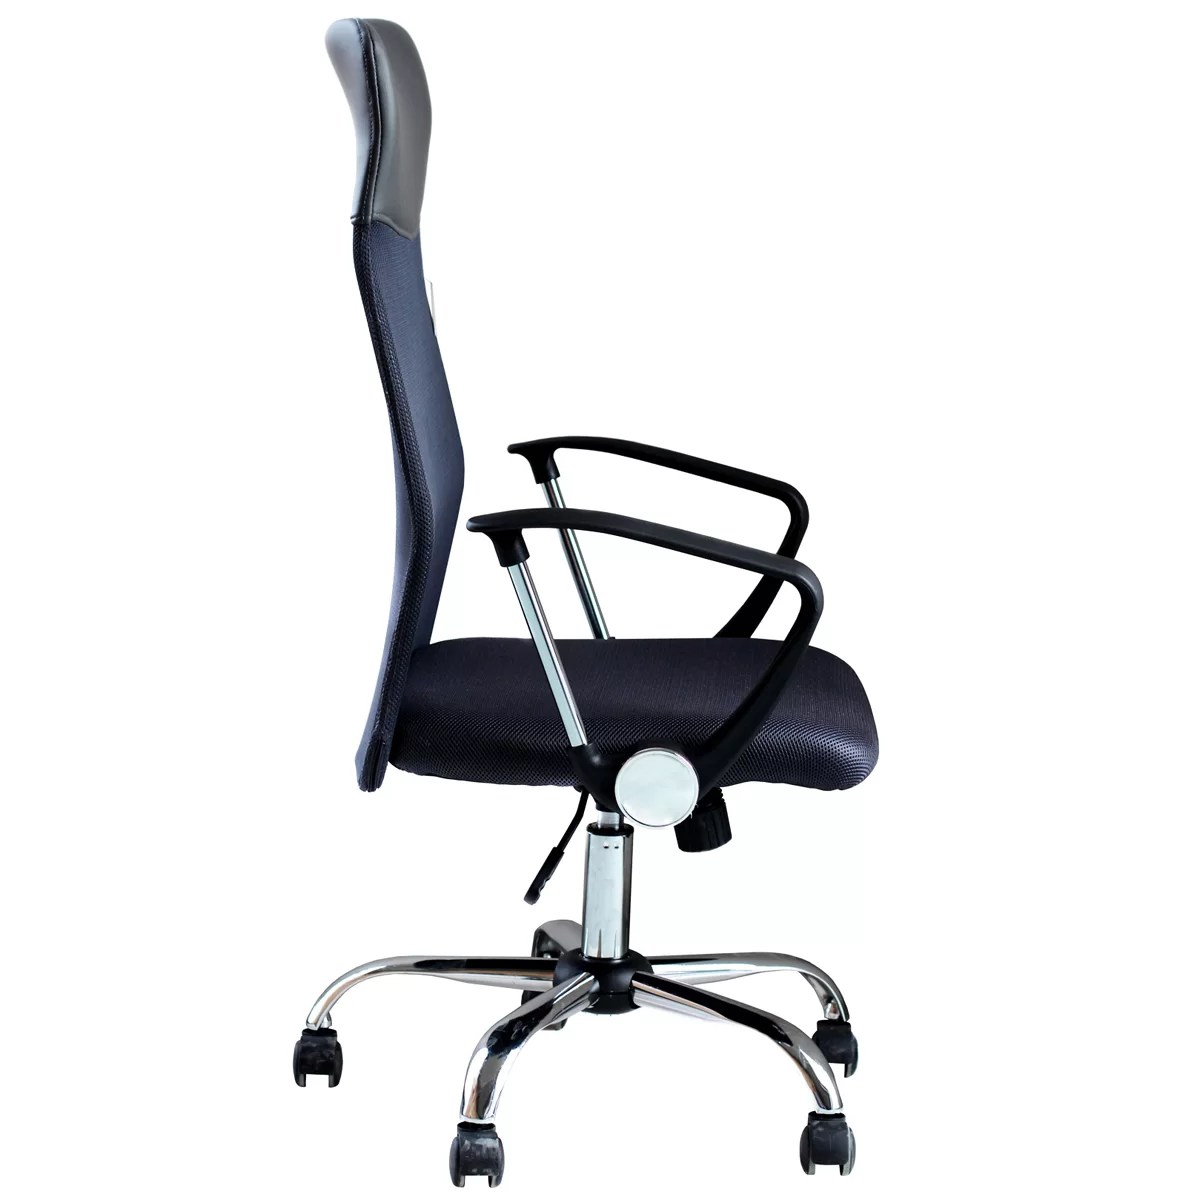 High Back Office Chairs Idsonlinecorp Ergonomic High Back Mesh Office Chair